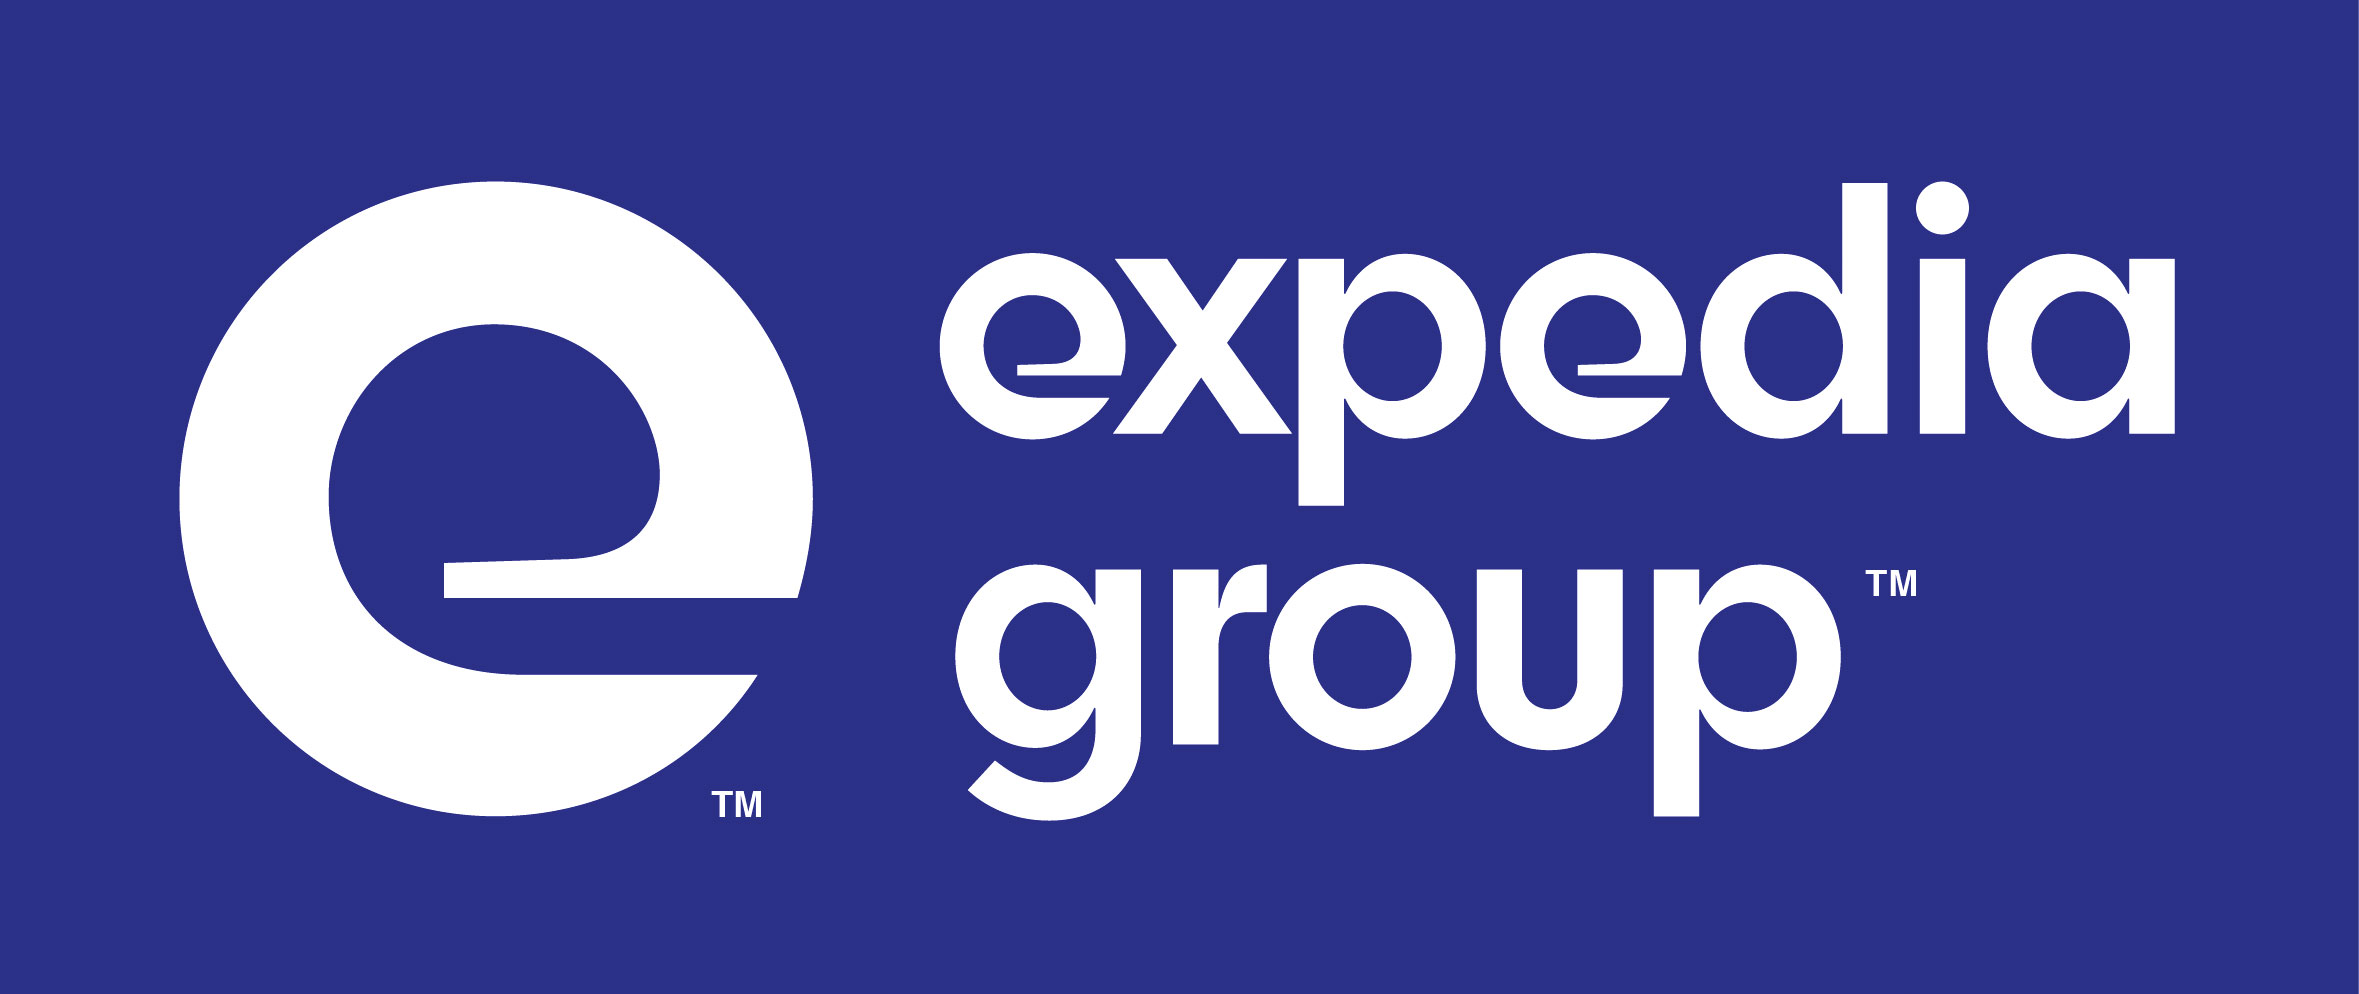 Expedia-Group-2018_Horizontal_White_on_Blue.jpg